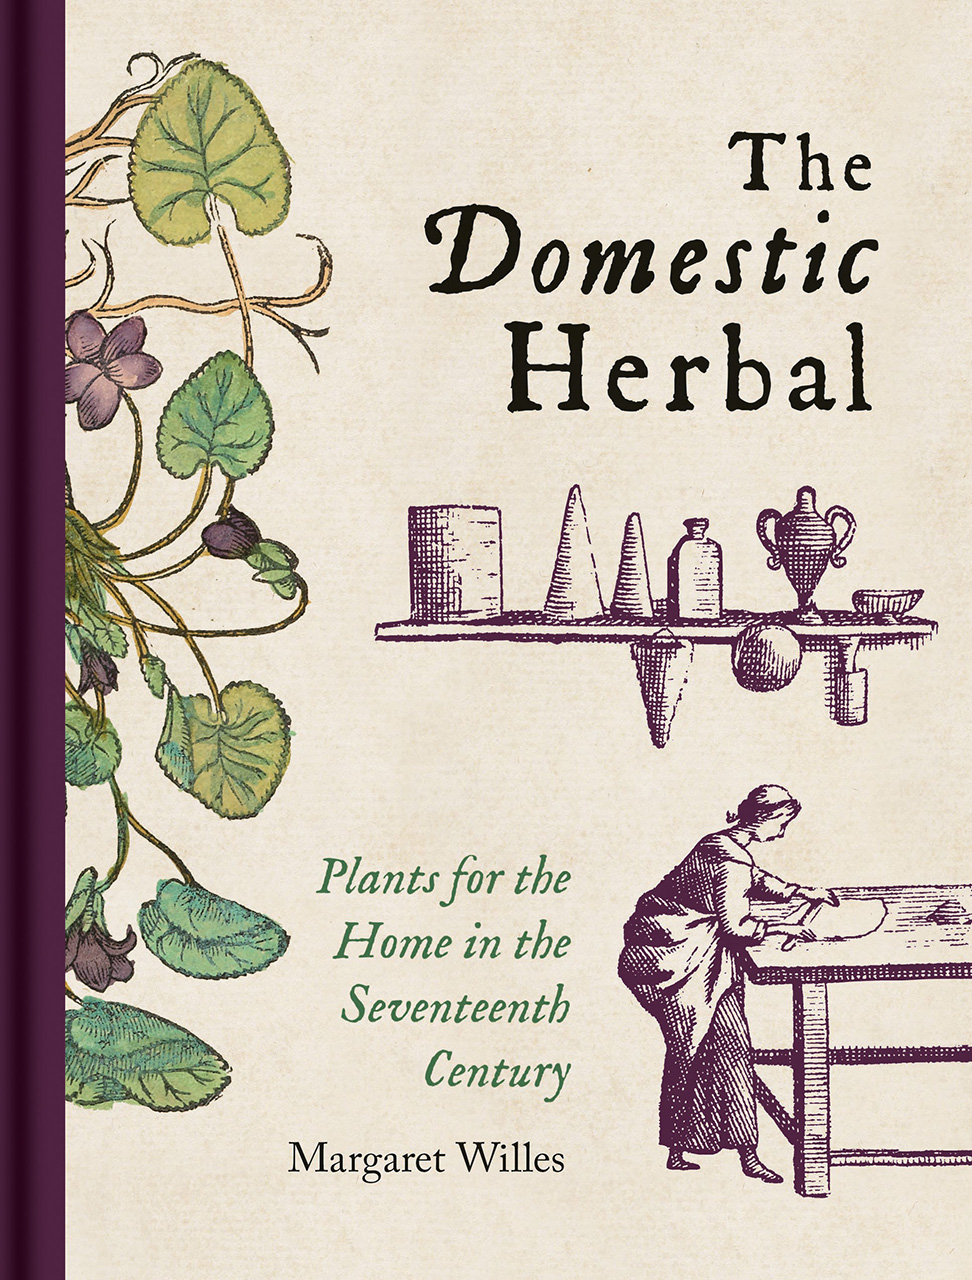 The Domestic Herbal